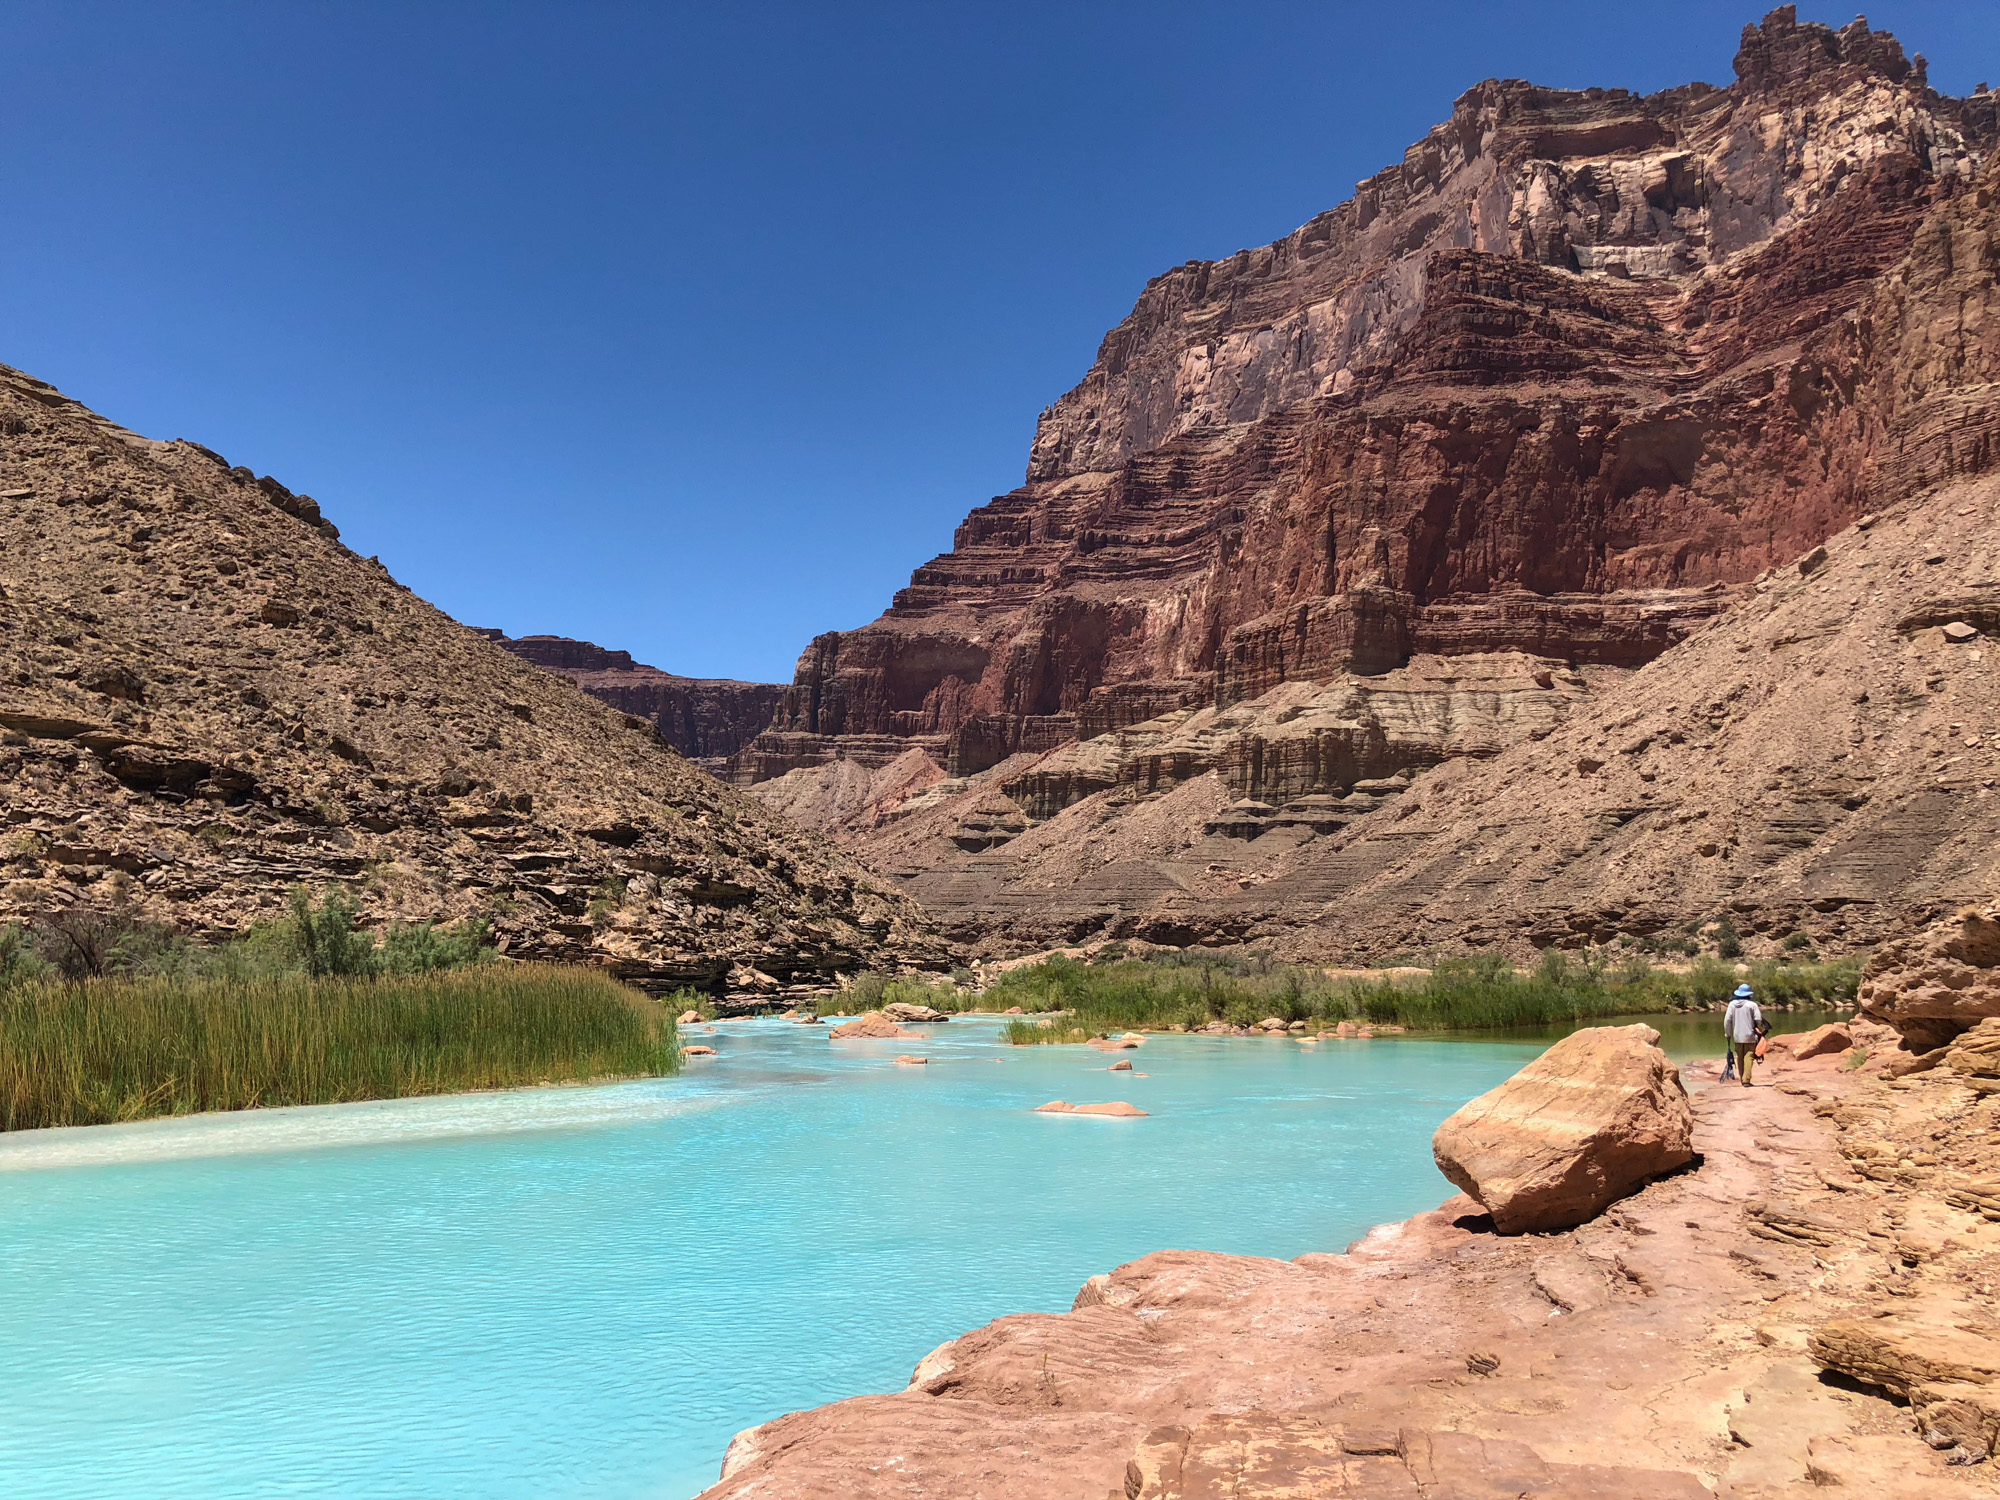 Turquoise blue of the Little Colorado River